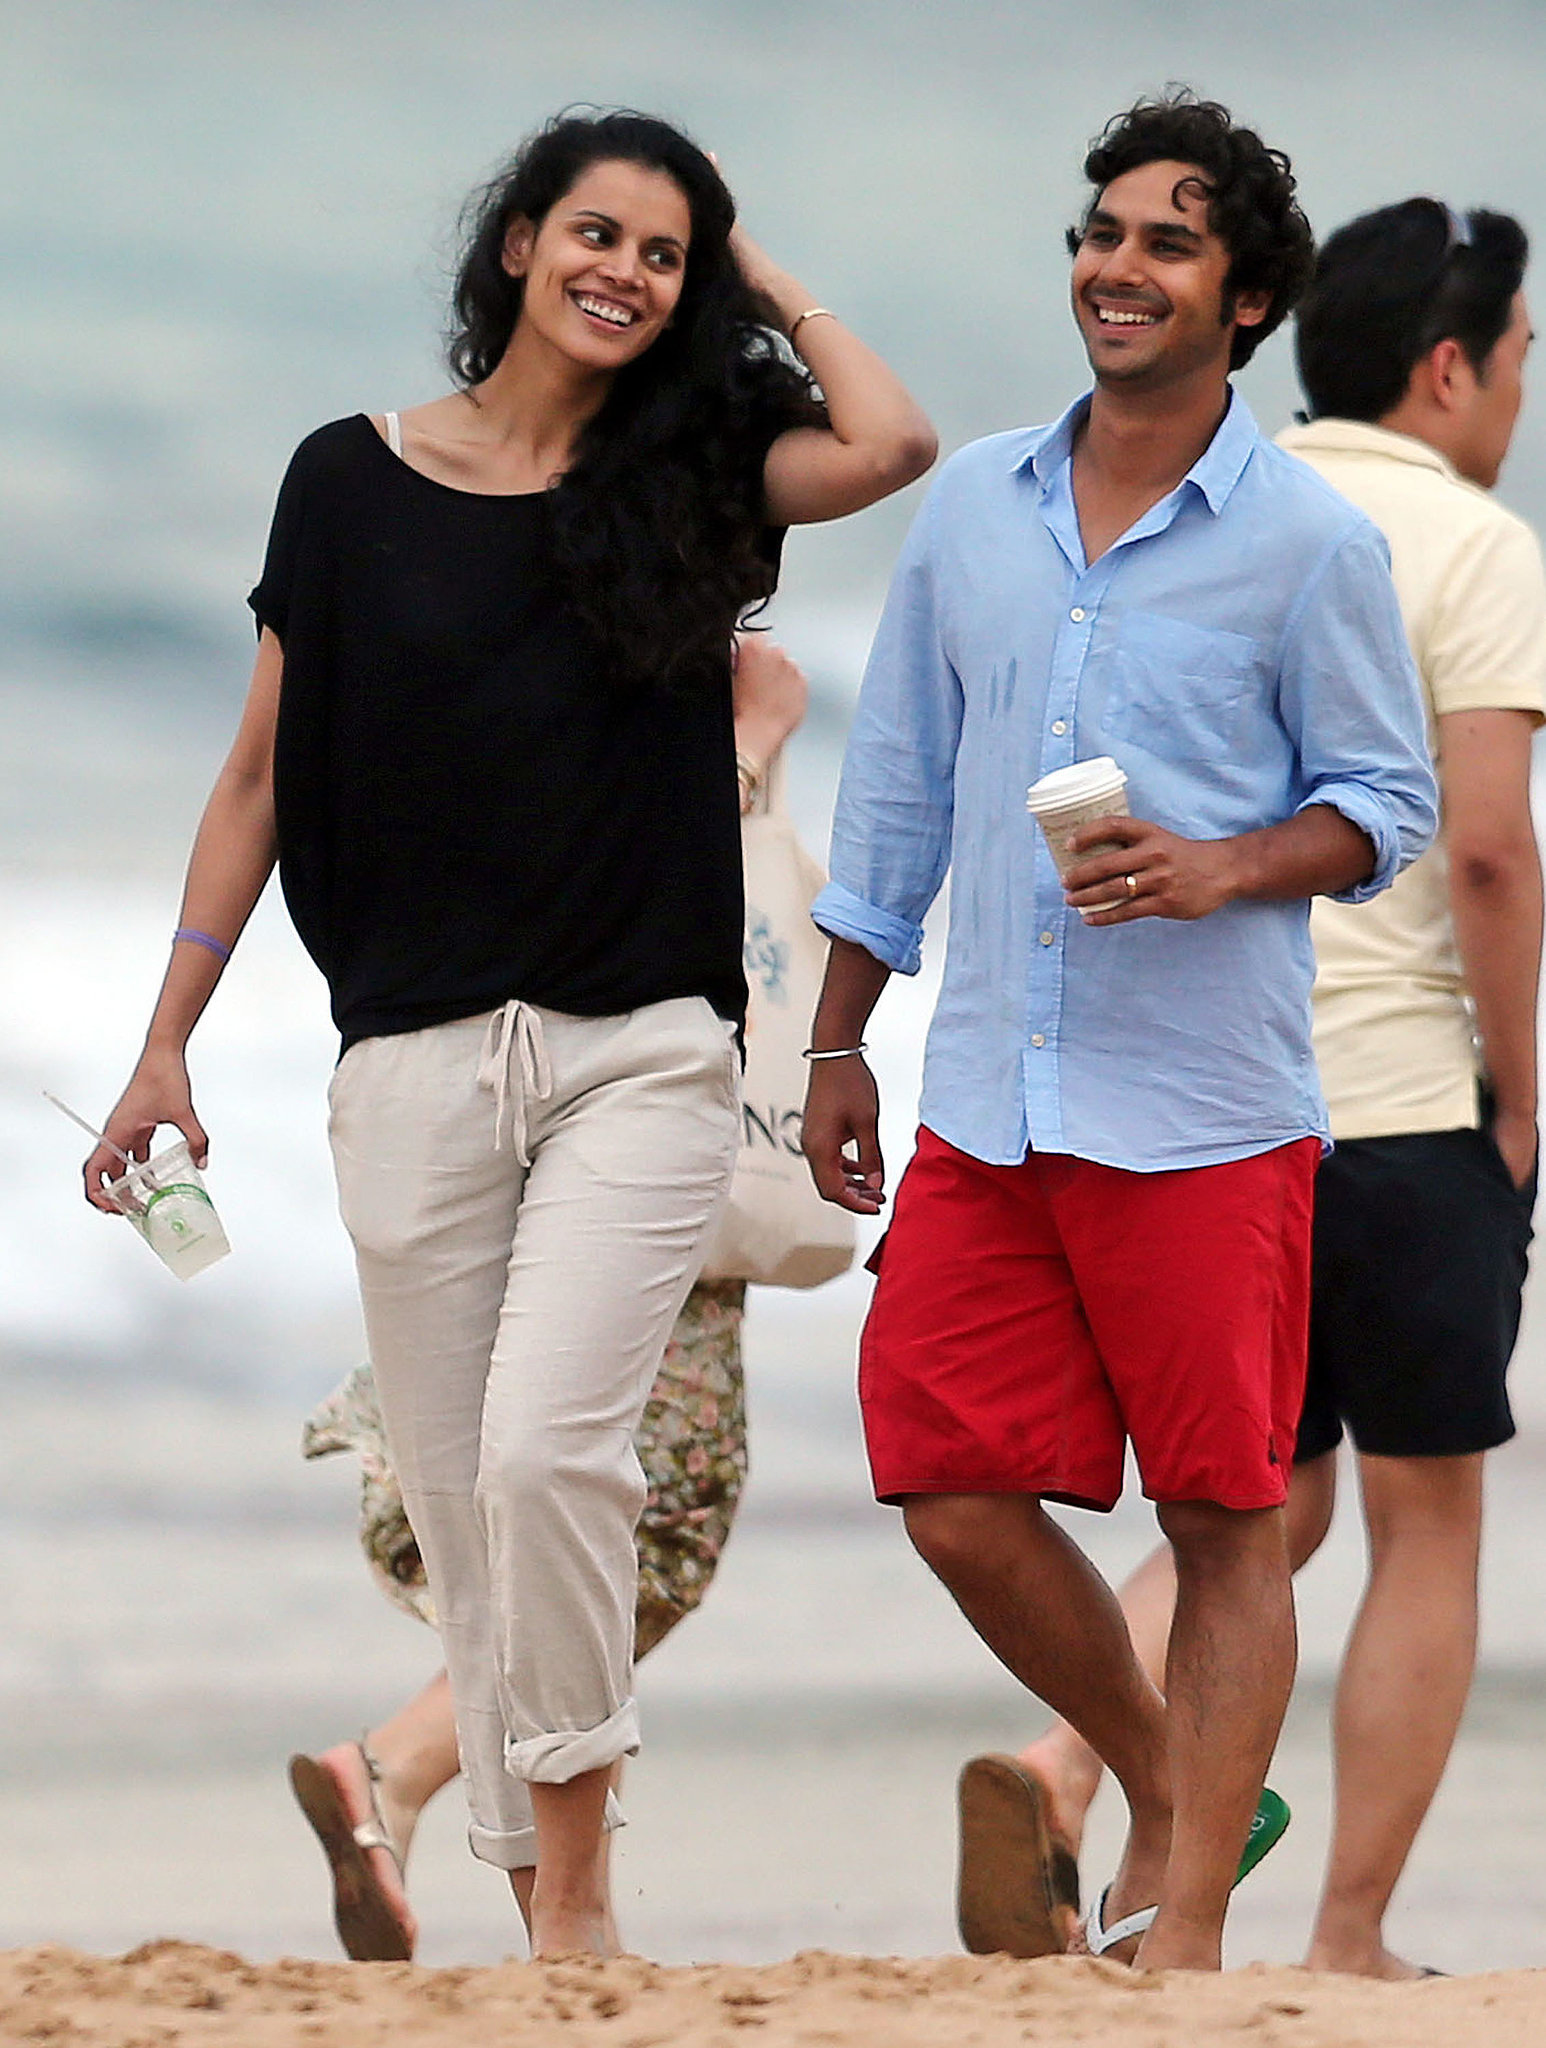 Kunal Nayyar and his wife hit the beach in Maui in Hawaii on Saturday.